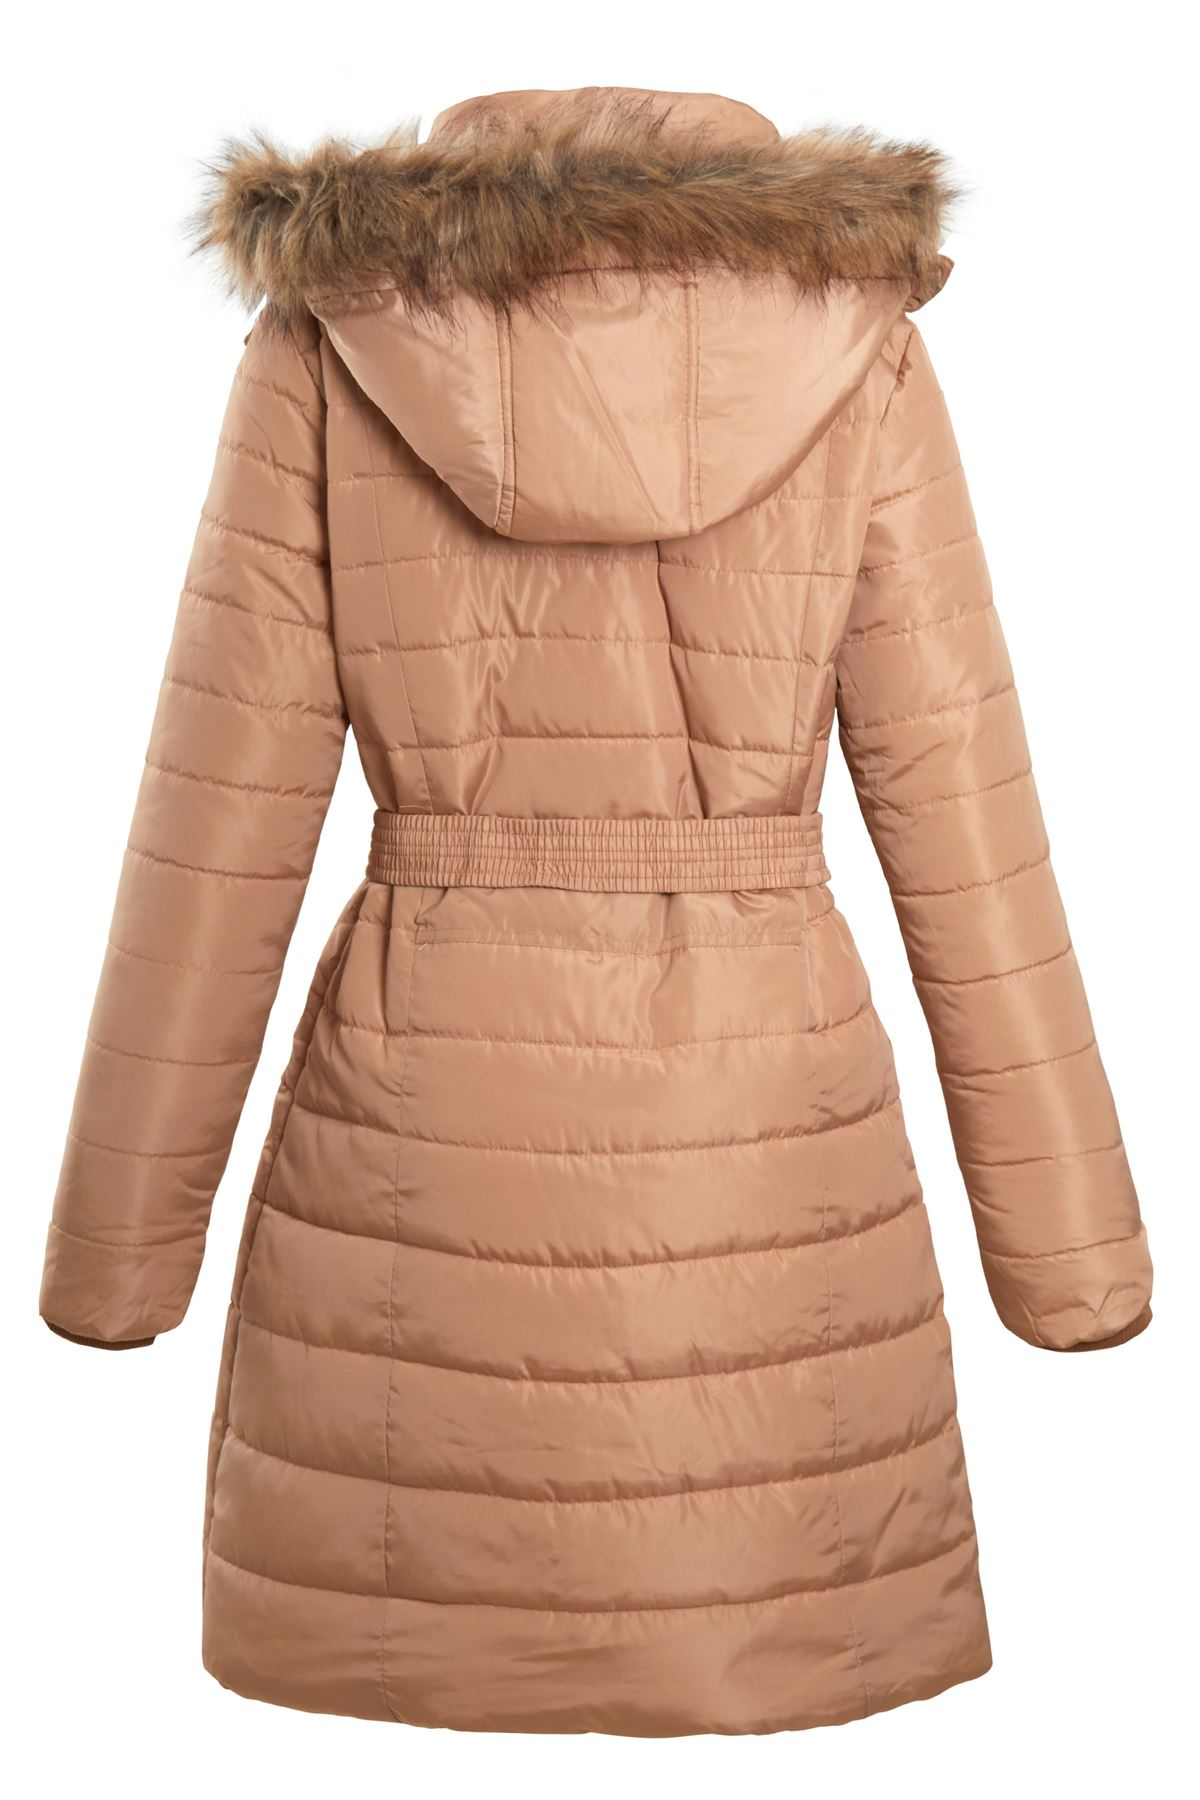 Ladies-Belted-Faux-Fur-Hood-Hooded-Long-Parka-Jacket-Quilted-Winter-Coat thumbnail 3